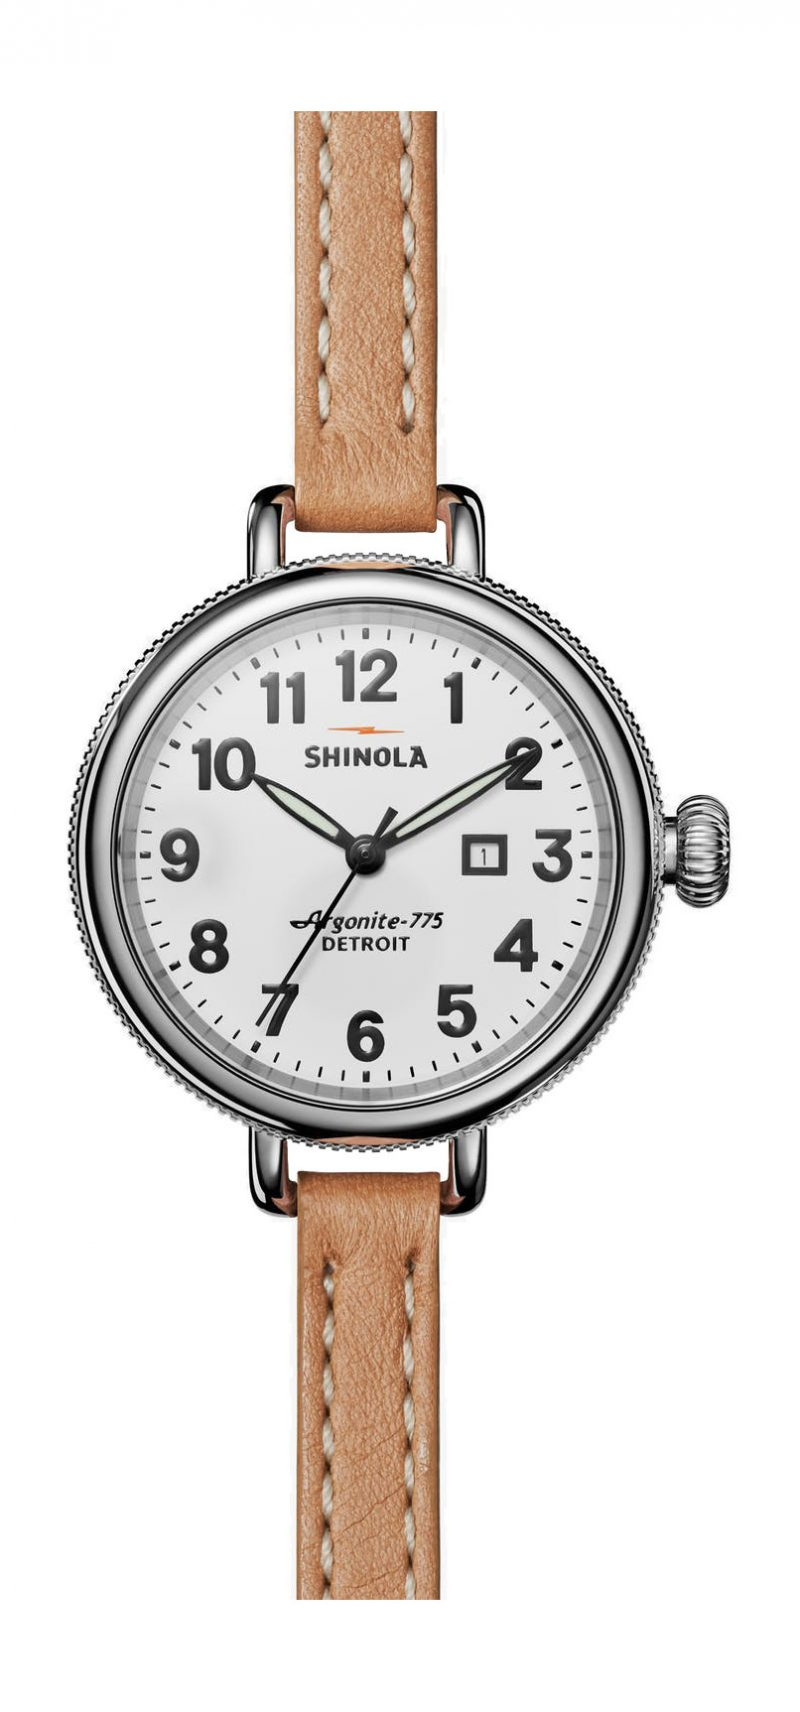 Shinola THE BIRDY 34MM – 10000234-sdt-000009971 – The Watch Pages